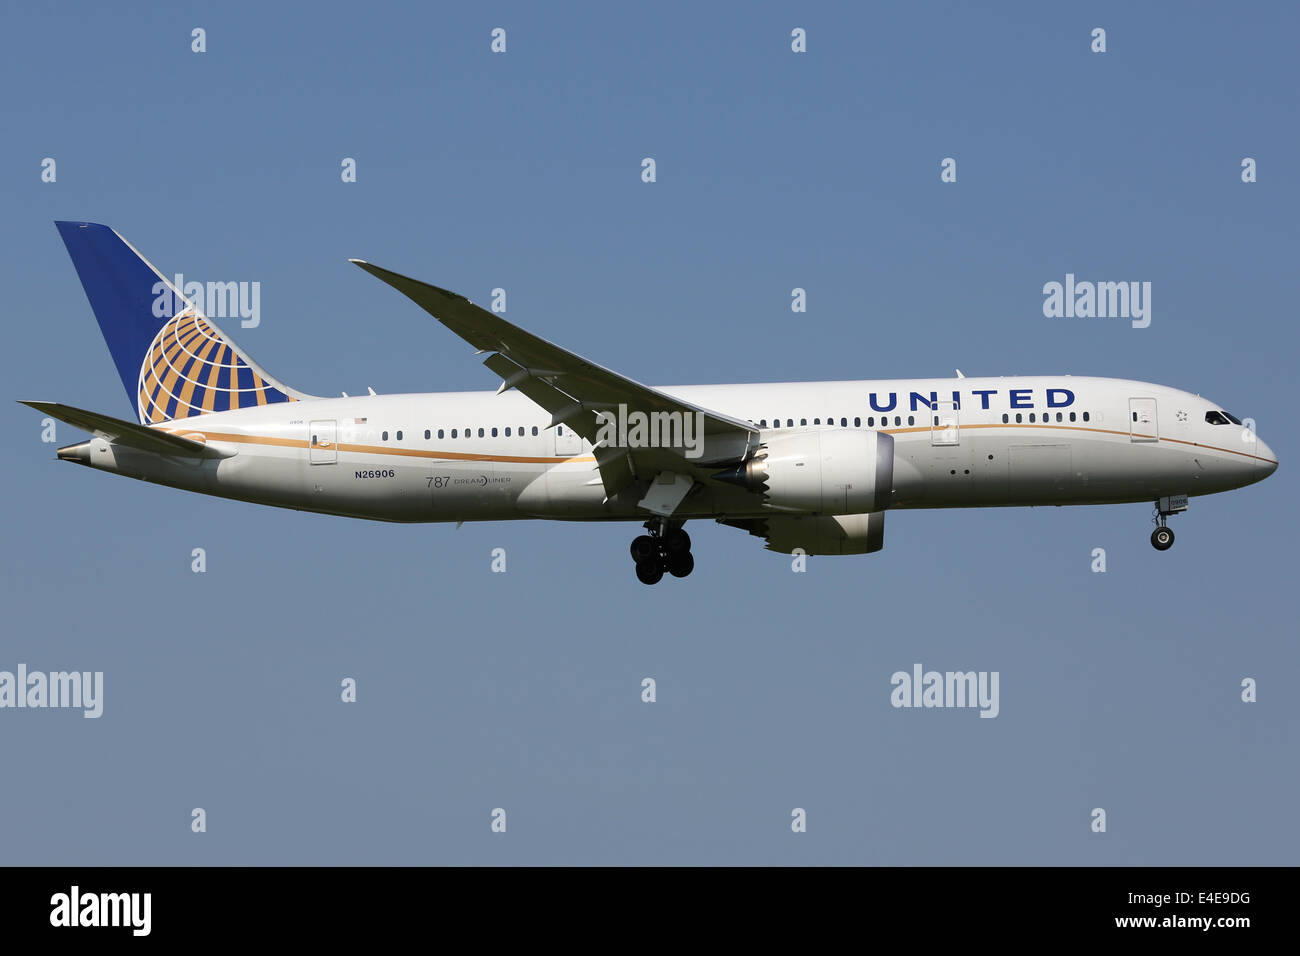 Tokyo Narita, Japan - May 16, 2014: A United Airlines Boeing 787 Dreamliner with the registration N26906 approaches - Stock Image